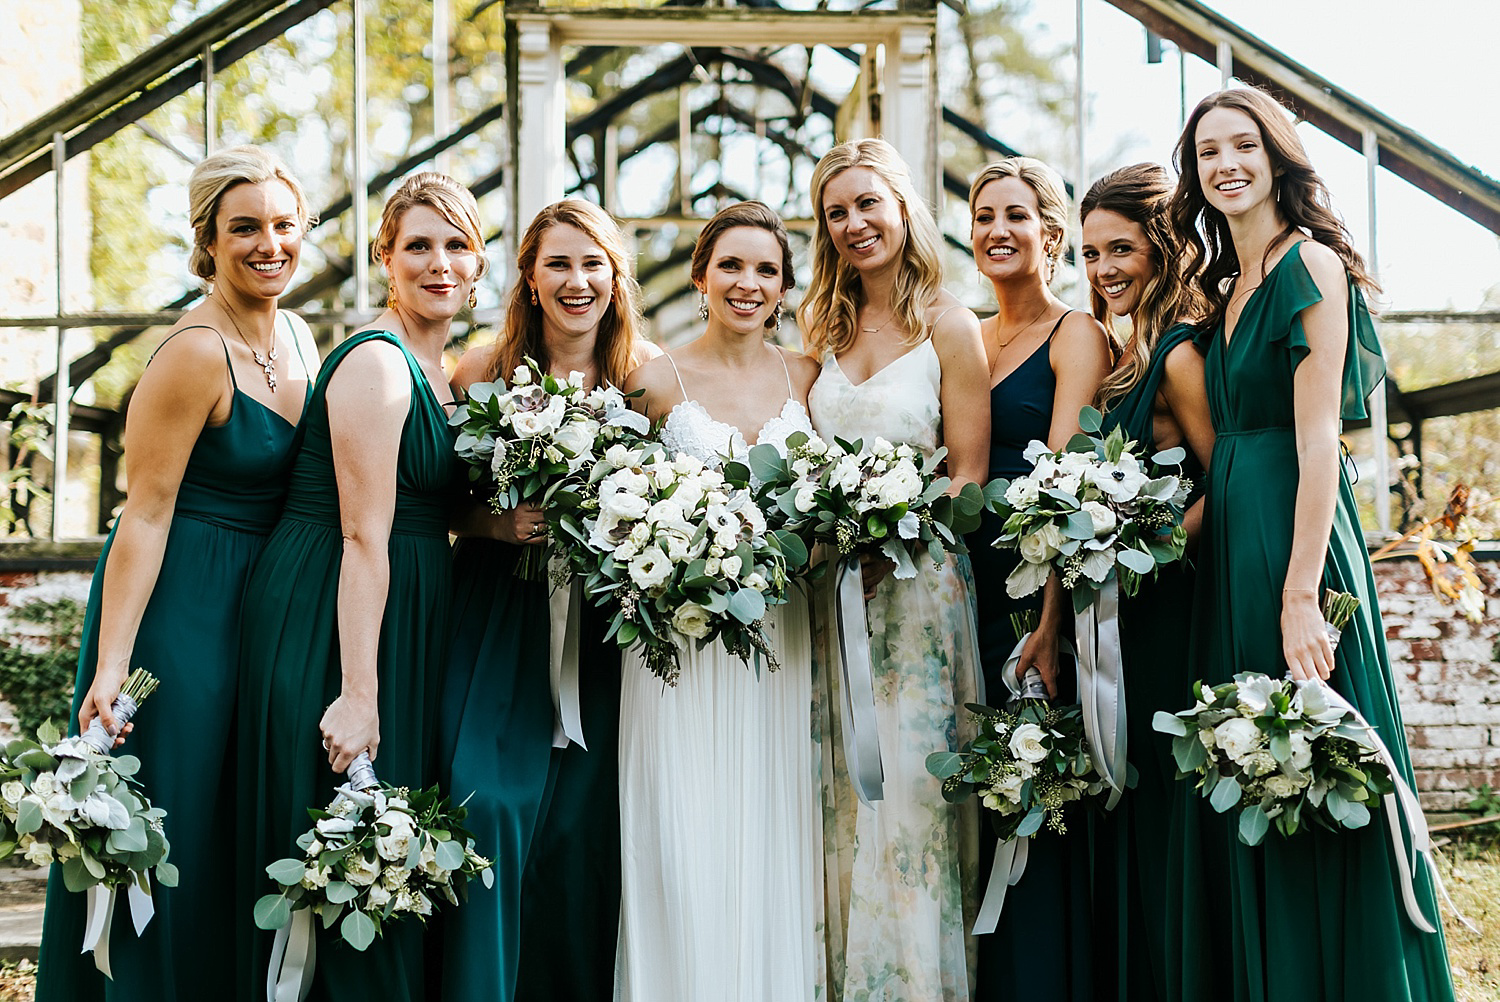 Bridal party at philander chase knox by danfredo photos + films